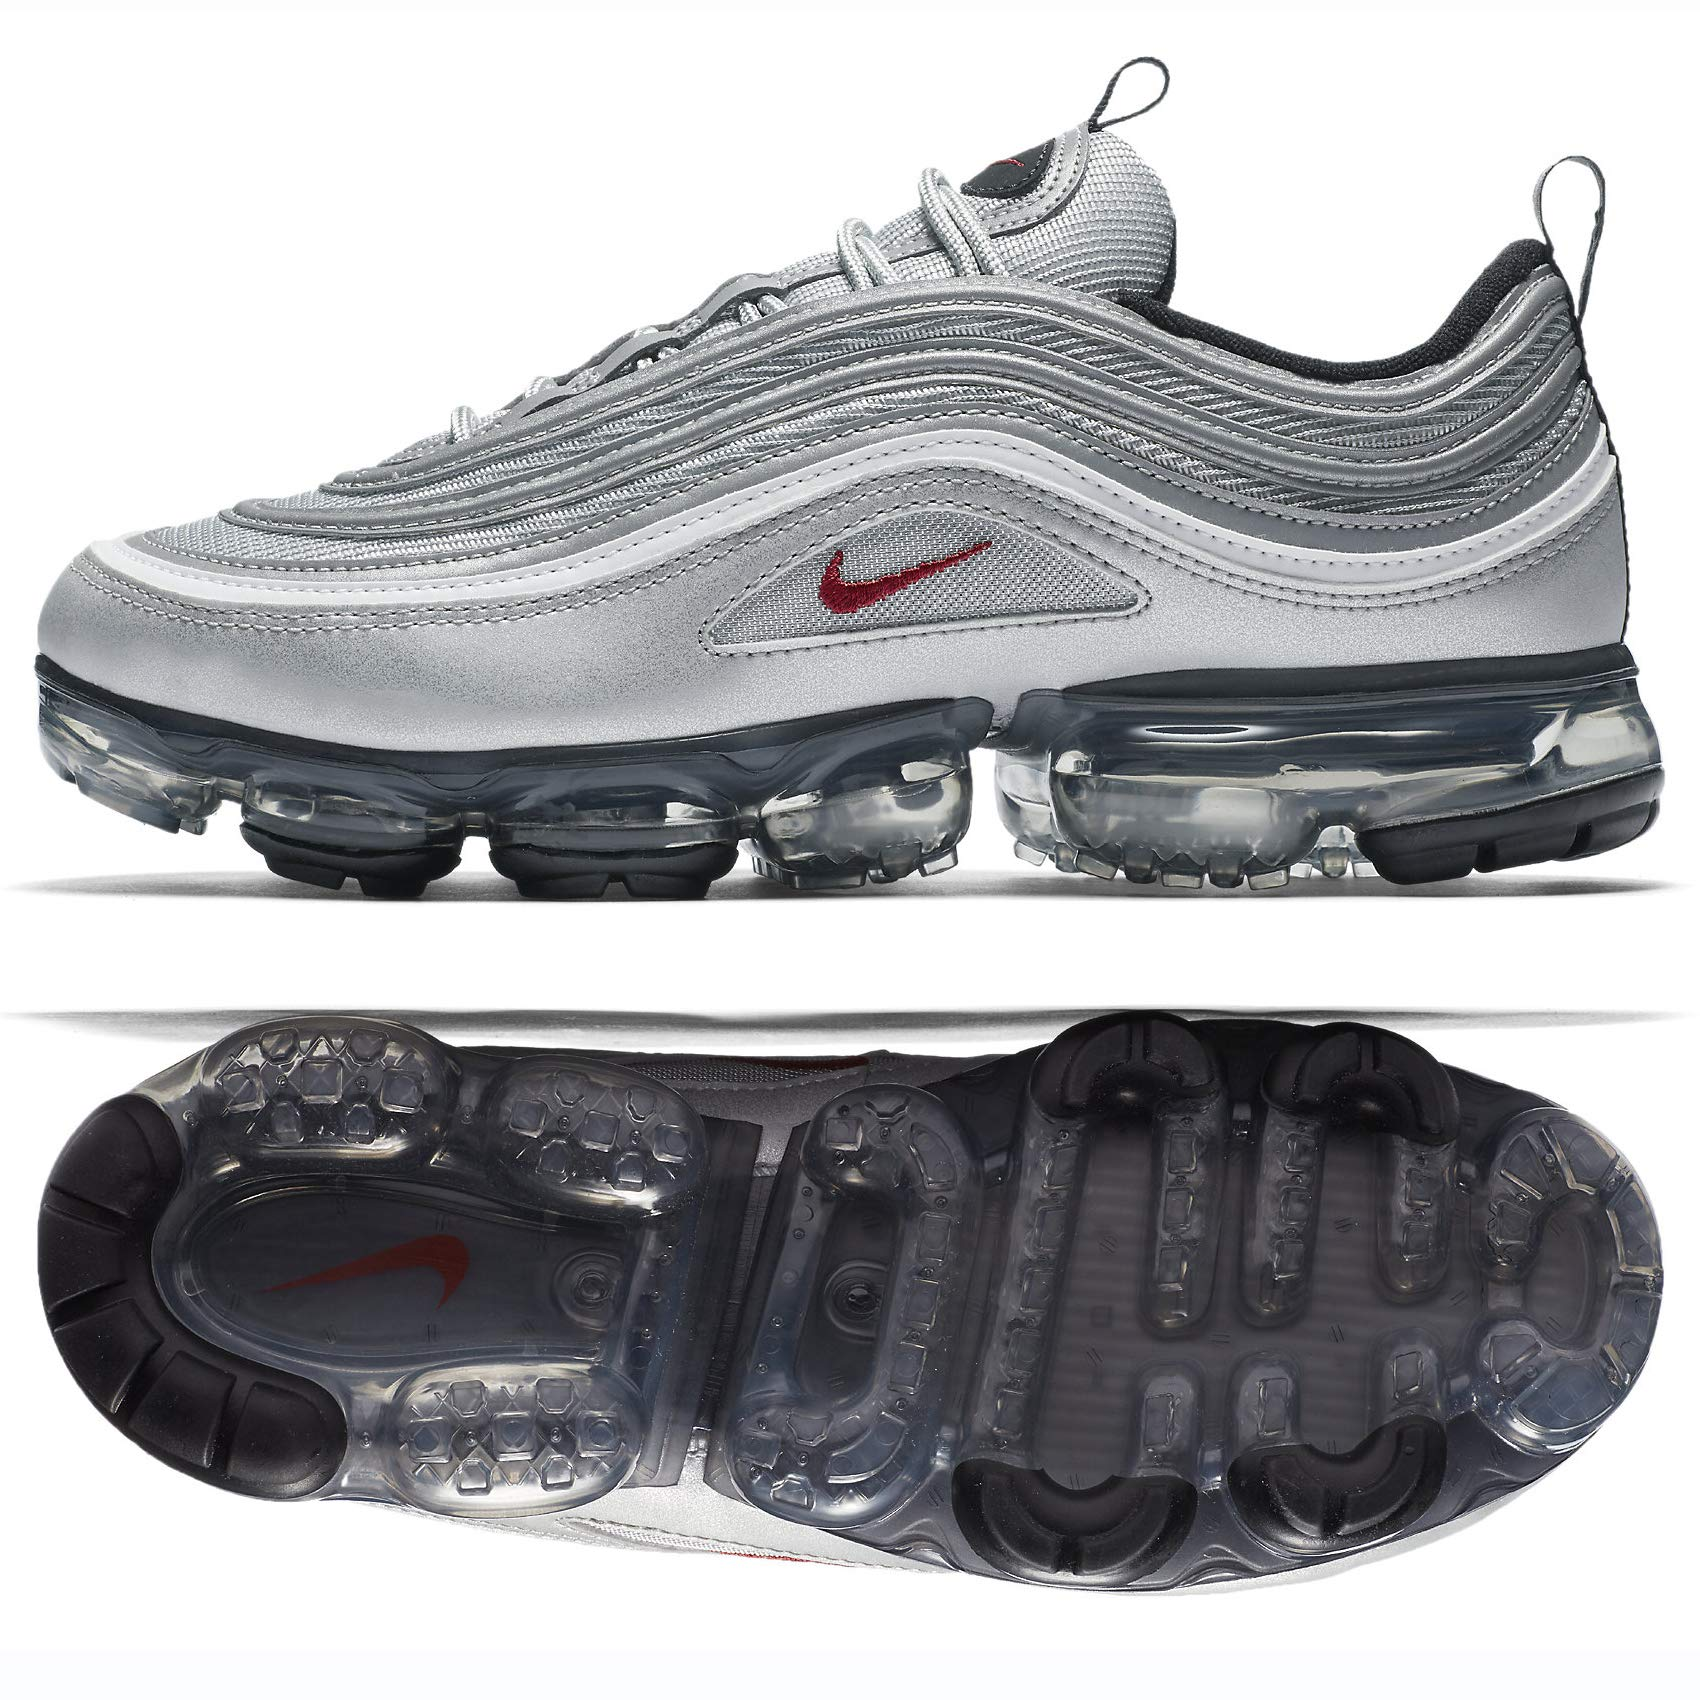 sports shoes 86feb 69e4e Nike Air Vapormax 97 Mens Running Trainers AJ7291 Sneakers Shoes (UK 9.5 US  10.5 EU 44.5, Metallic Silver Varisty red 002)